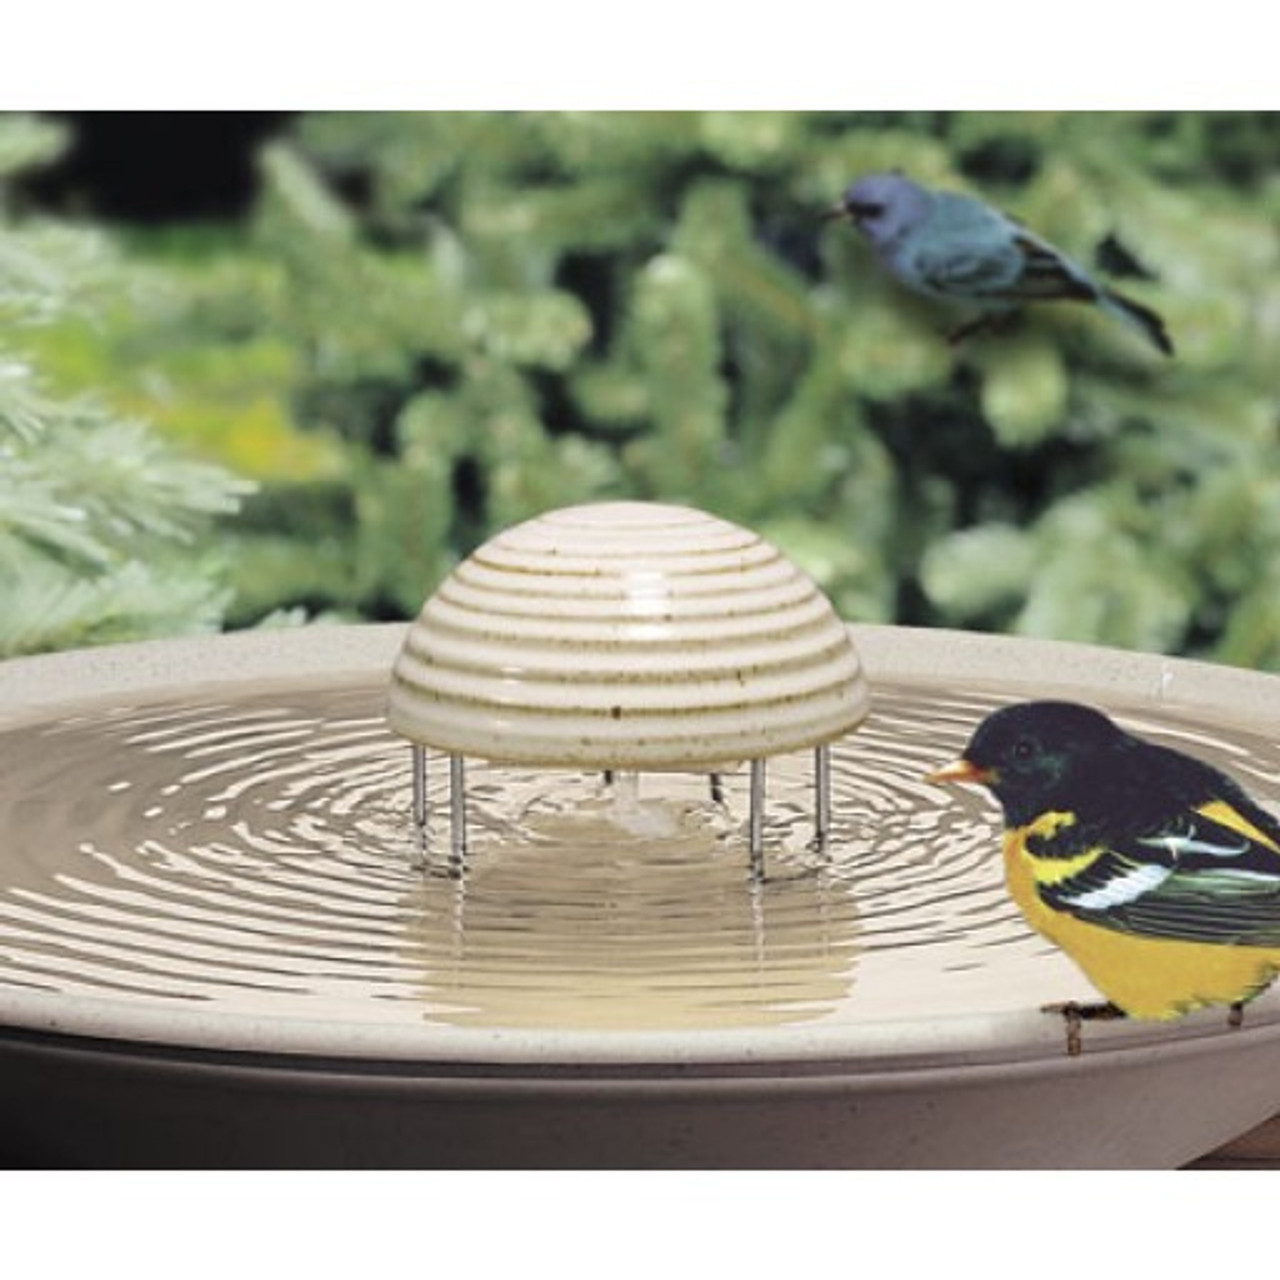 Bird Baths - Drippers, Misters, Water Movers